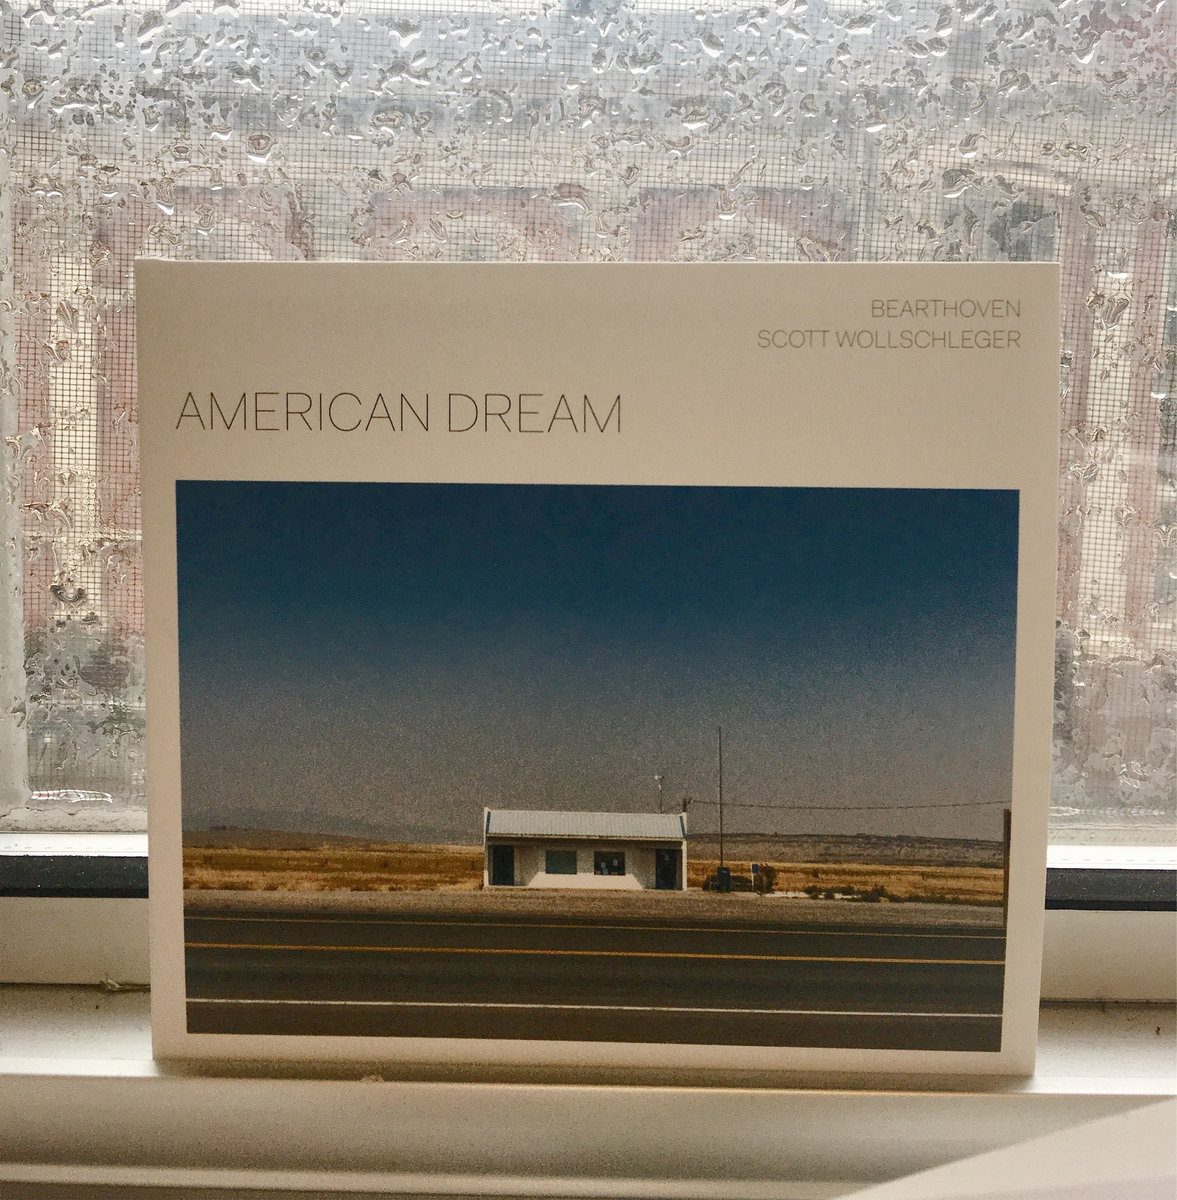 American Dream | Bearthoven